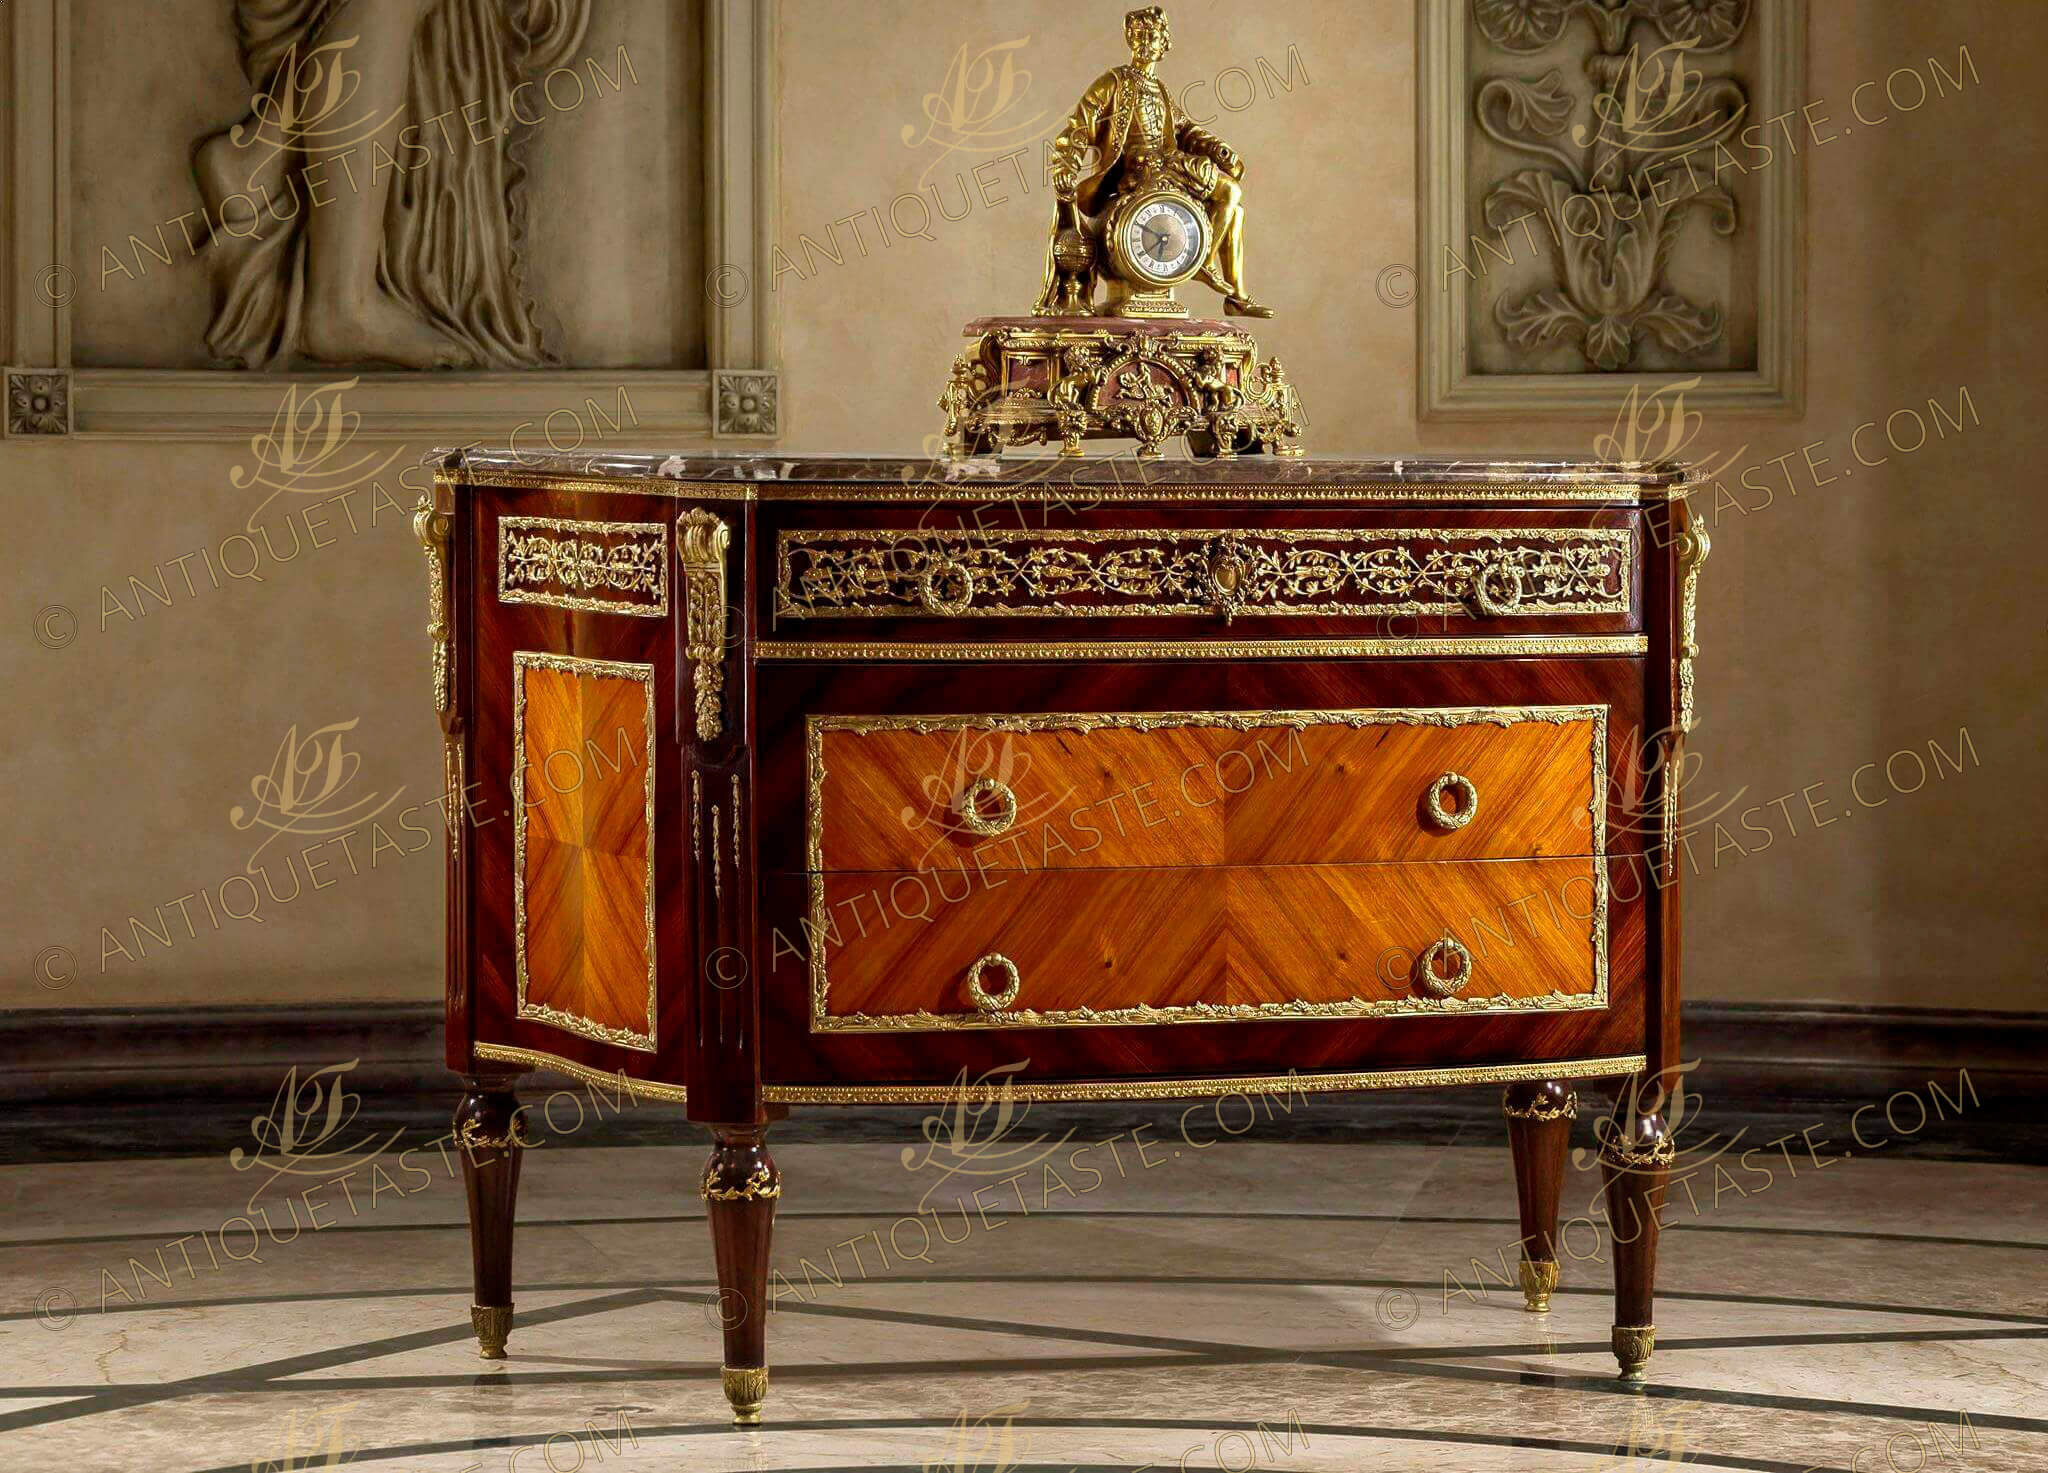 A Louis XVI style gilt-ormolu mounted quarter veneered commode after the model by Jean-Francois Leleu and François Linke Paris, circa 1900 Of D form surmounted by a fine veined eared marble top, above a panelled ormolu-vine-mounted frieze drawer, and boxwood stringing above a pair of quarter-veneered panelled drawers with reeded ring handles all within fine foliage ormolu encadrement, the fluted angles ornamented with ormolu floral chandelles and headed with scrolled acanthus and oak-leaf clasped volutes, on ormolu ornamented circular tapering legs terminating in acanthus-capped feet